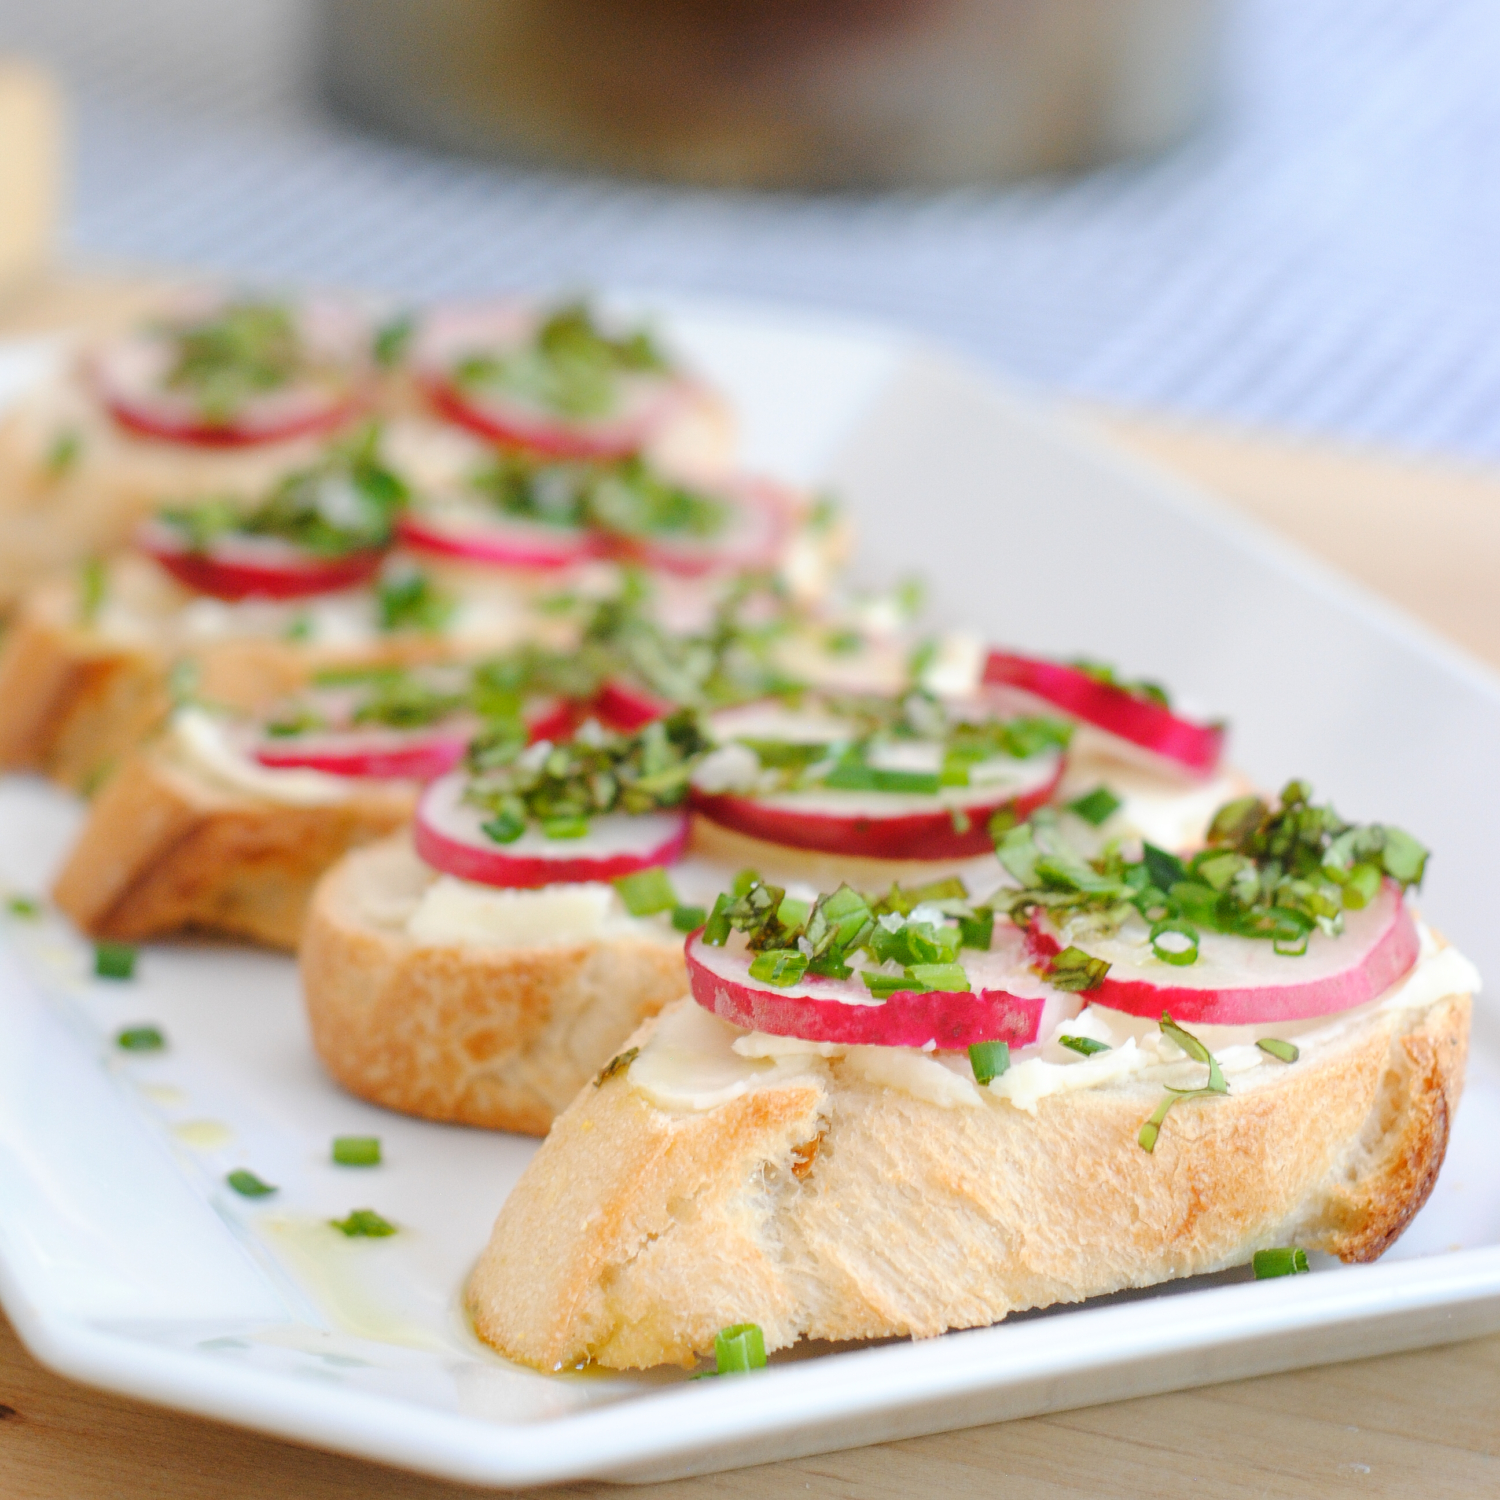 Herbed radish crostini - an easy, elegant, very French appetizer!